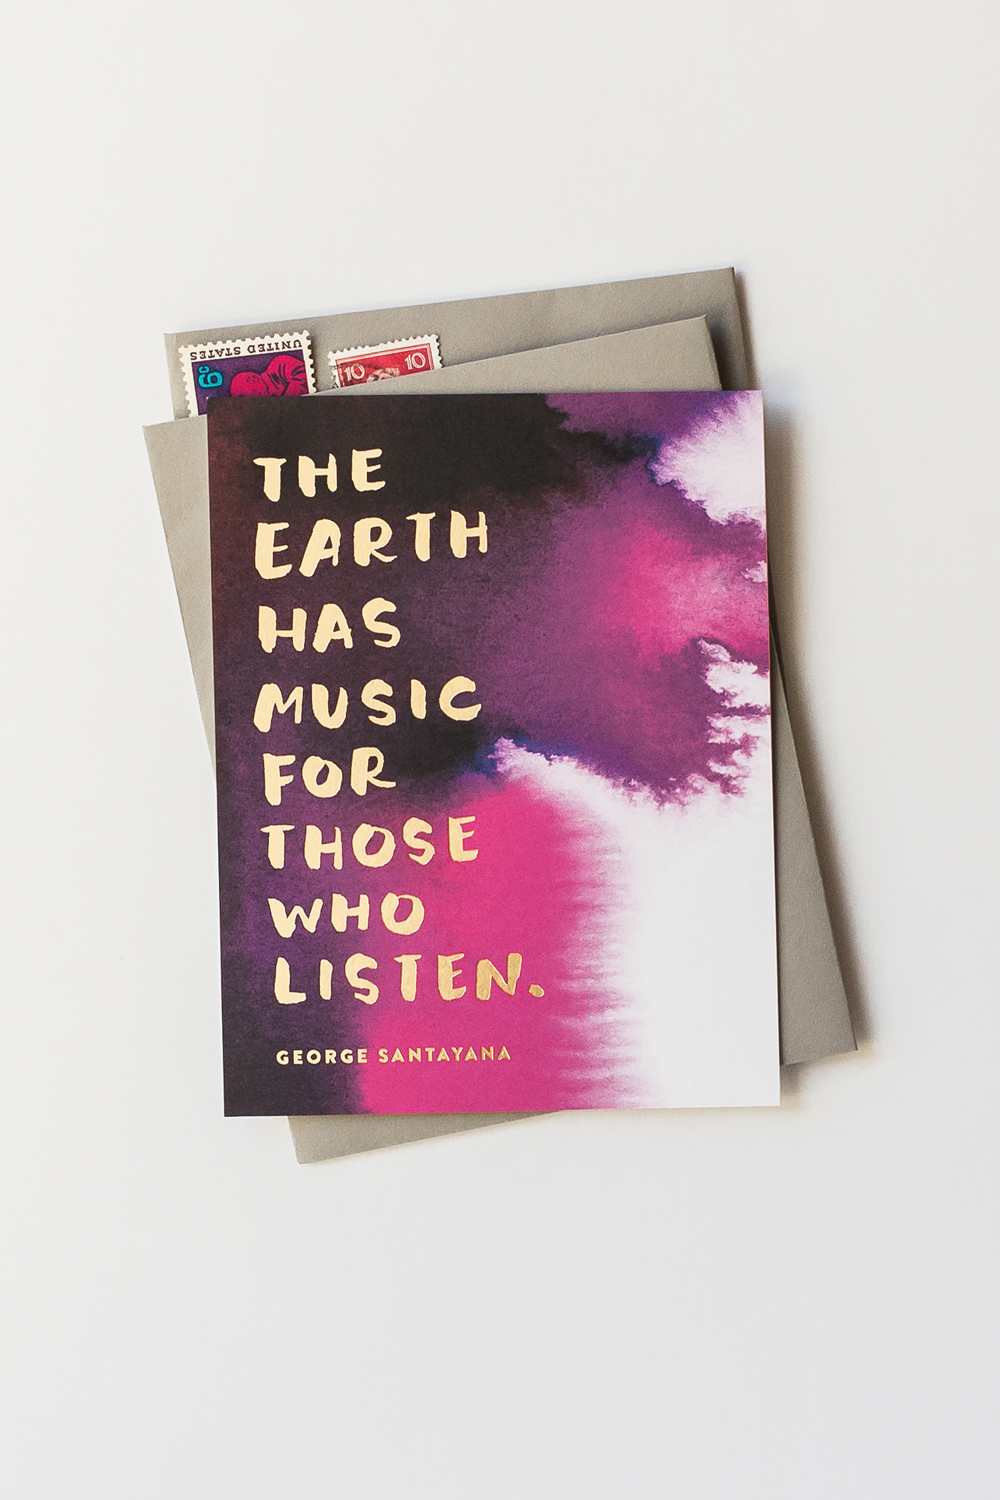 fc135-the-earth-has-music-for-those-who-listen.jpg